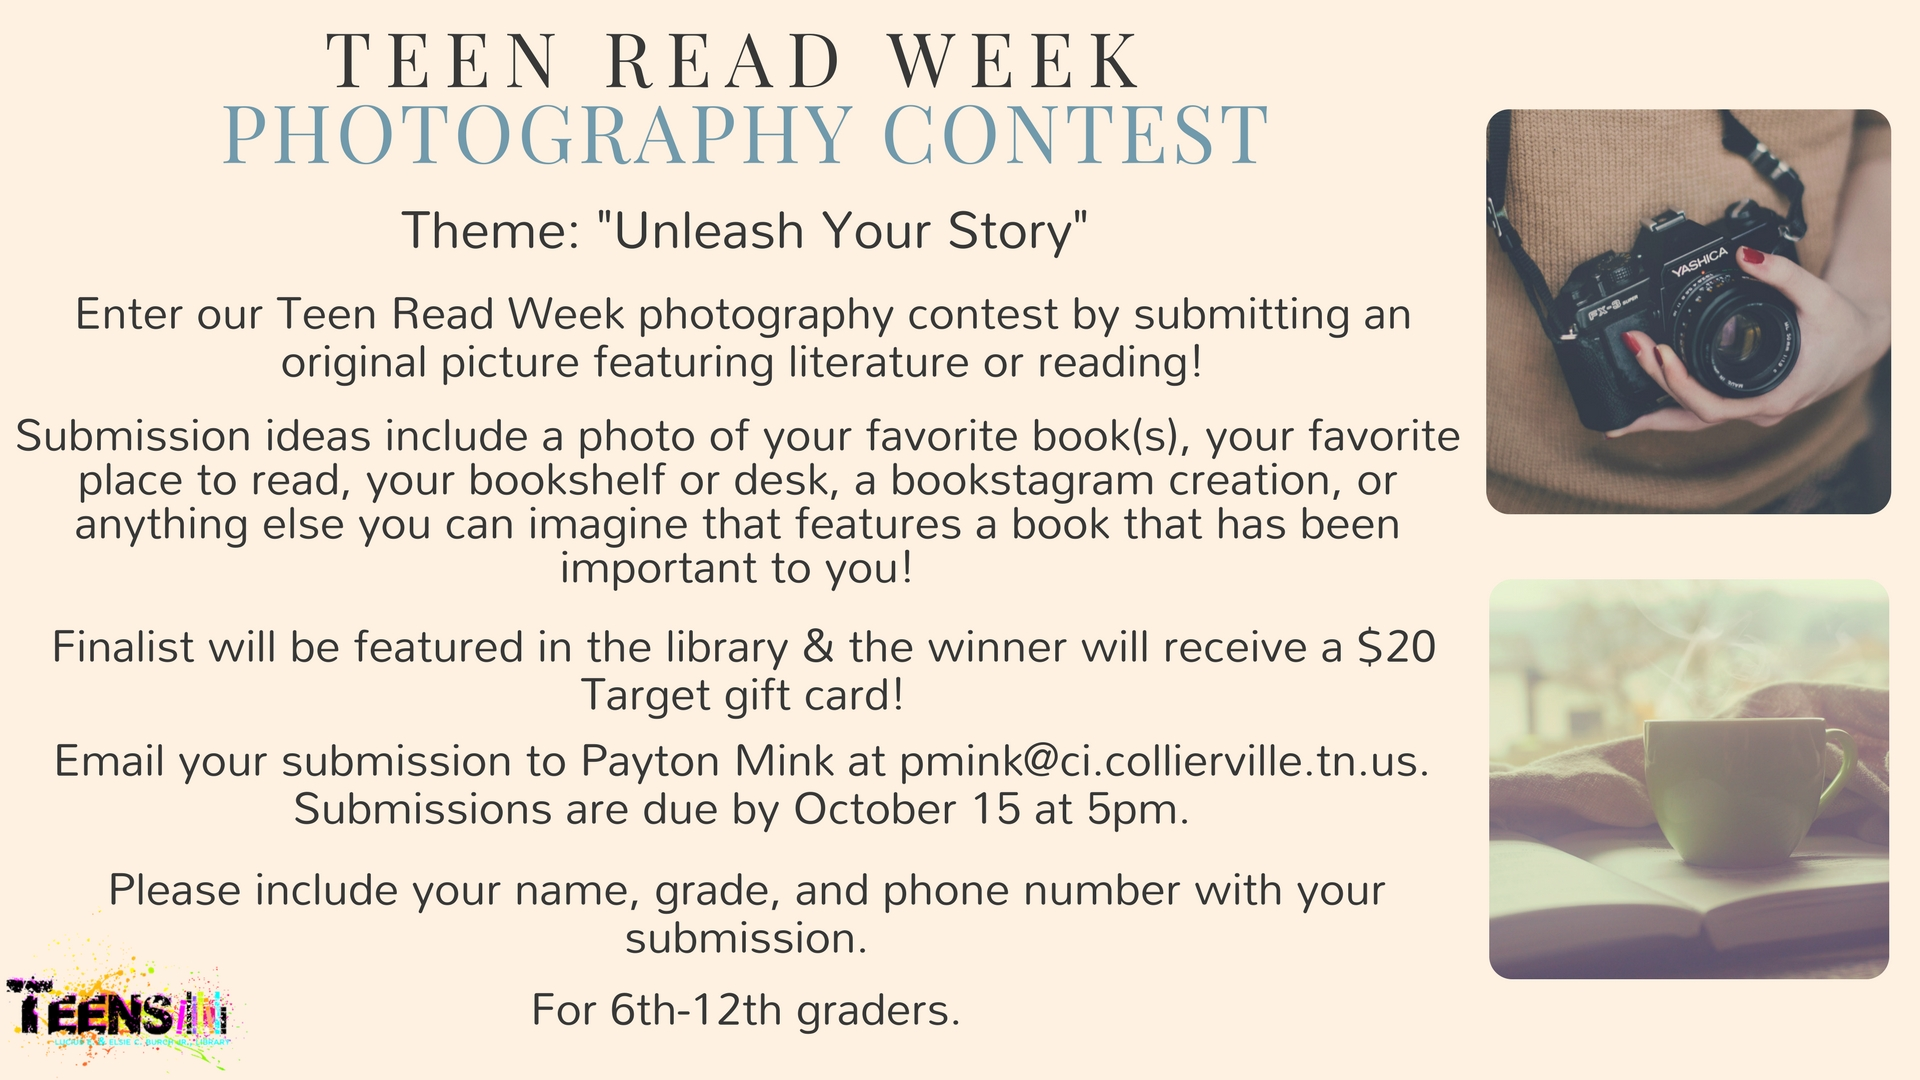 Teen Read Week Photography Contest